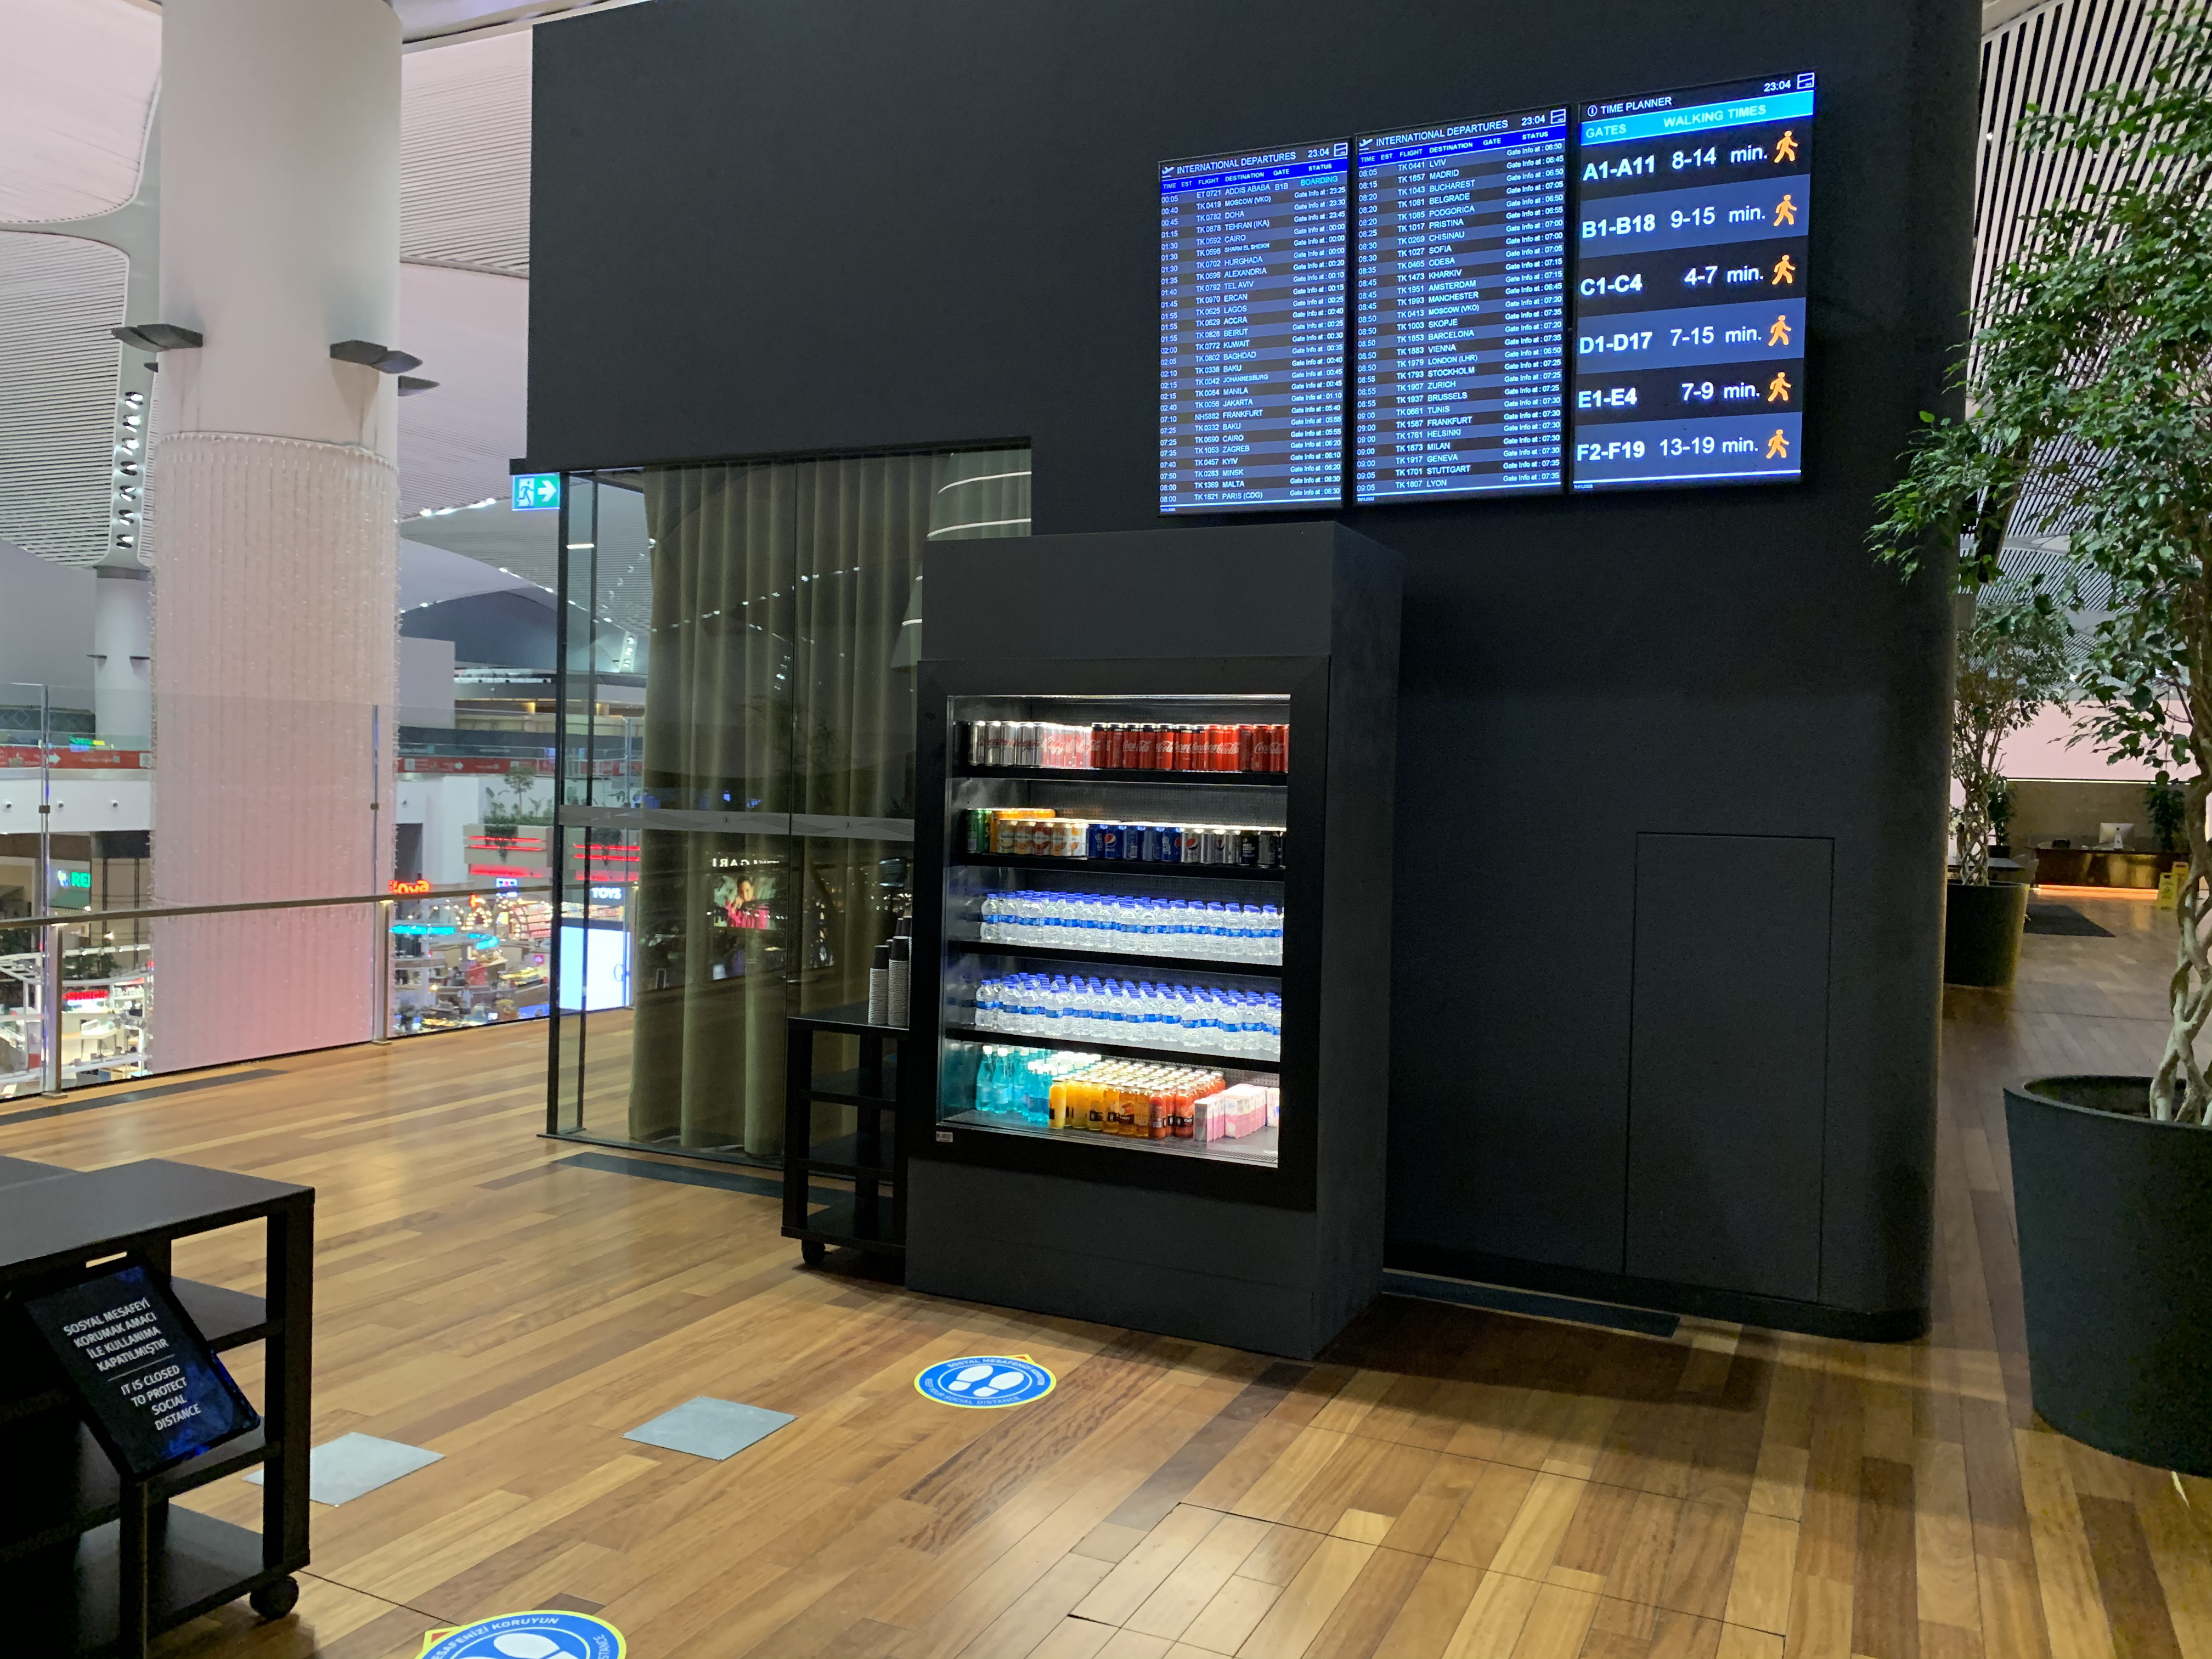 Turkish Airlines Miles And Smiles Lounge Review (New Istanbul Airport) – Current Business Class lounge is closed